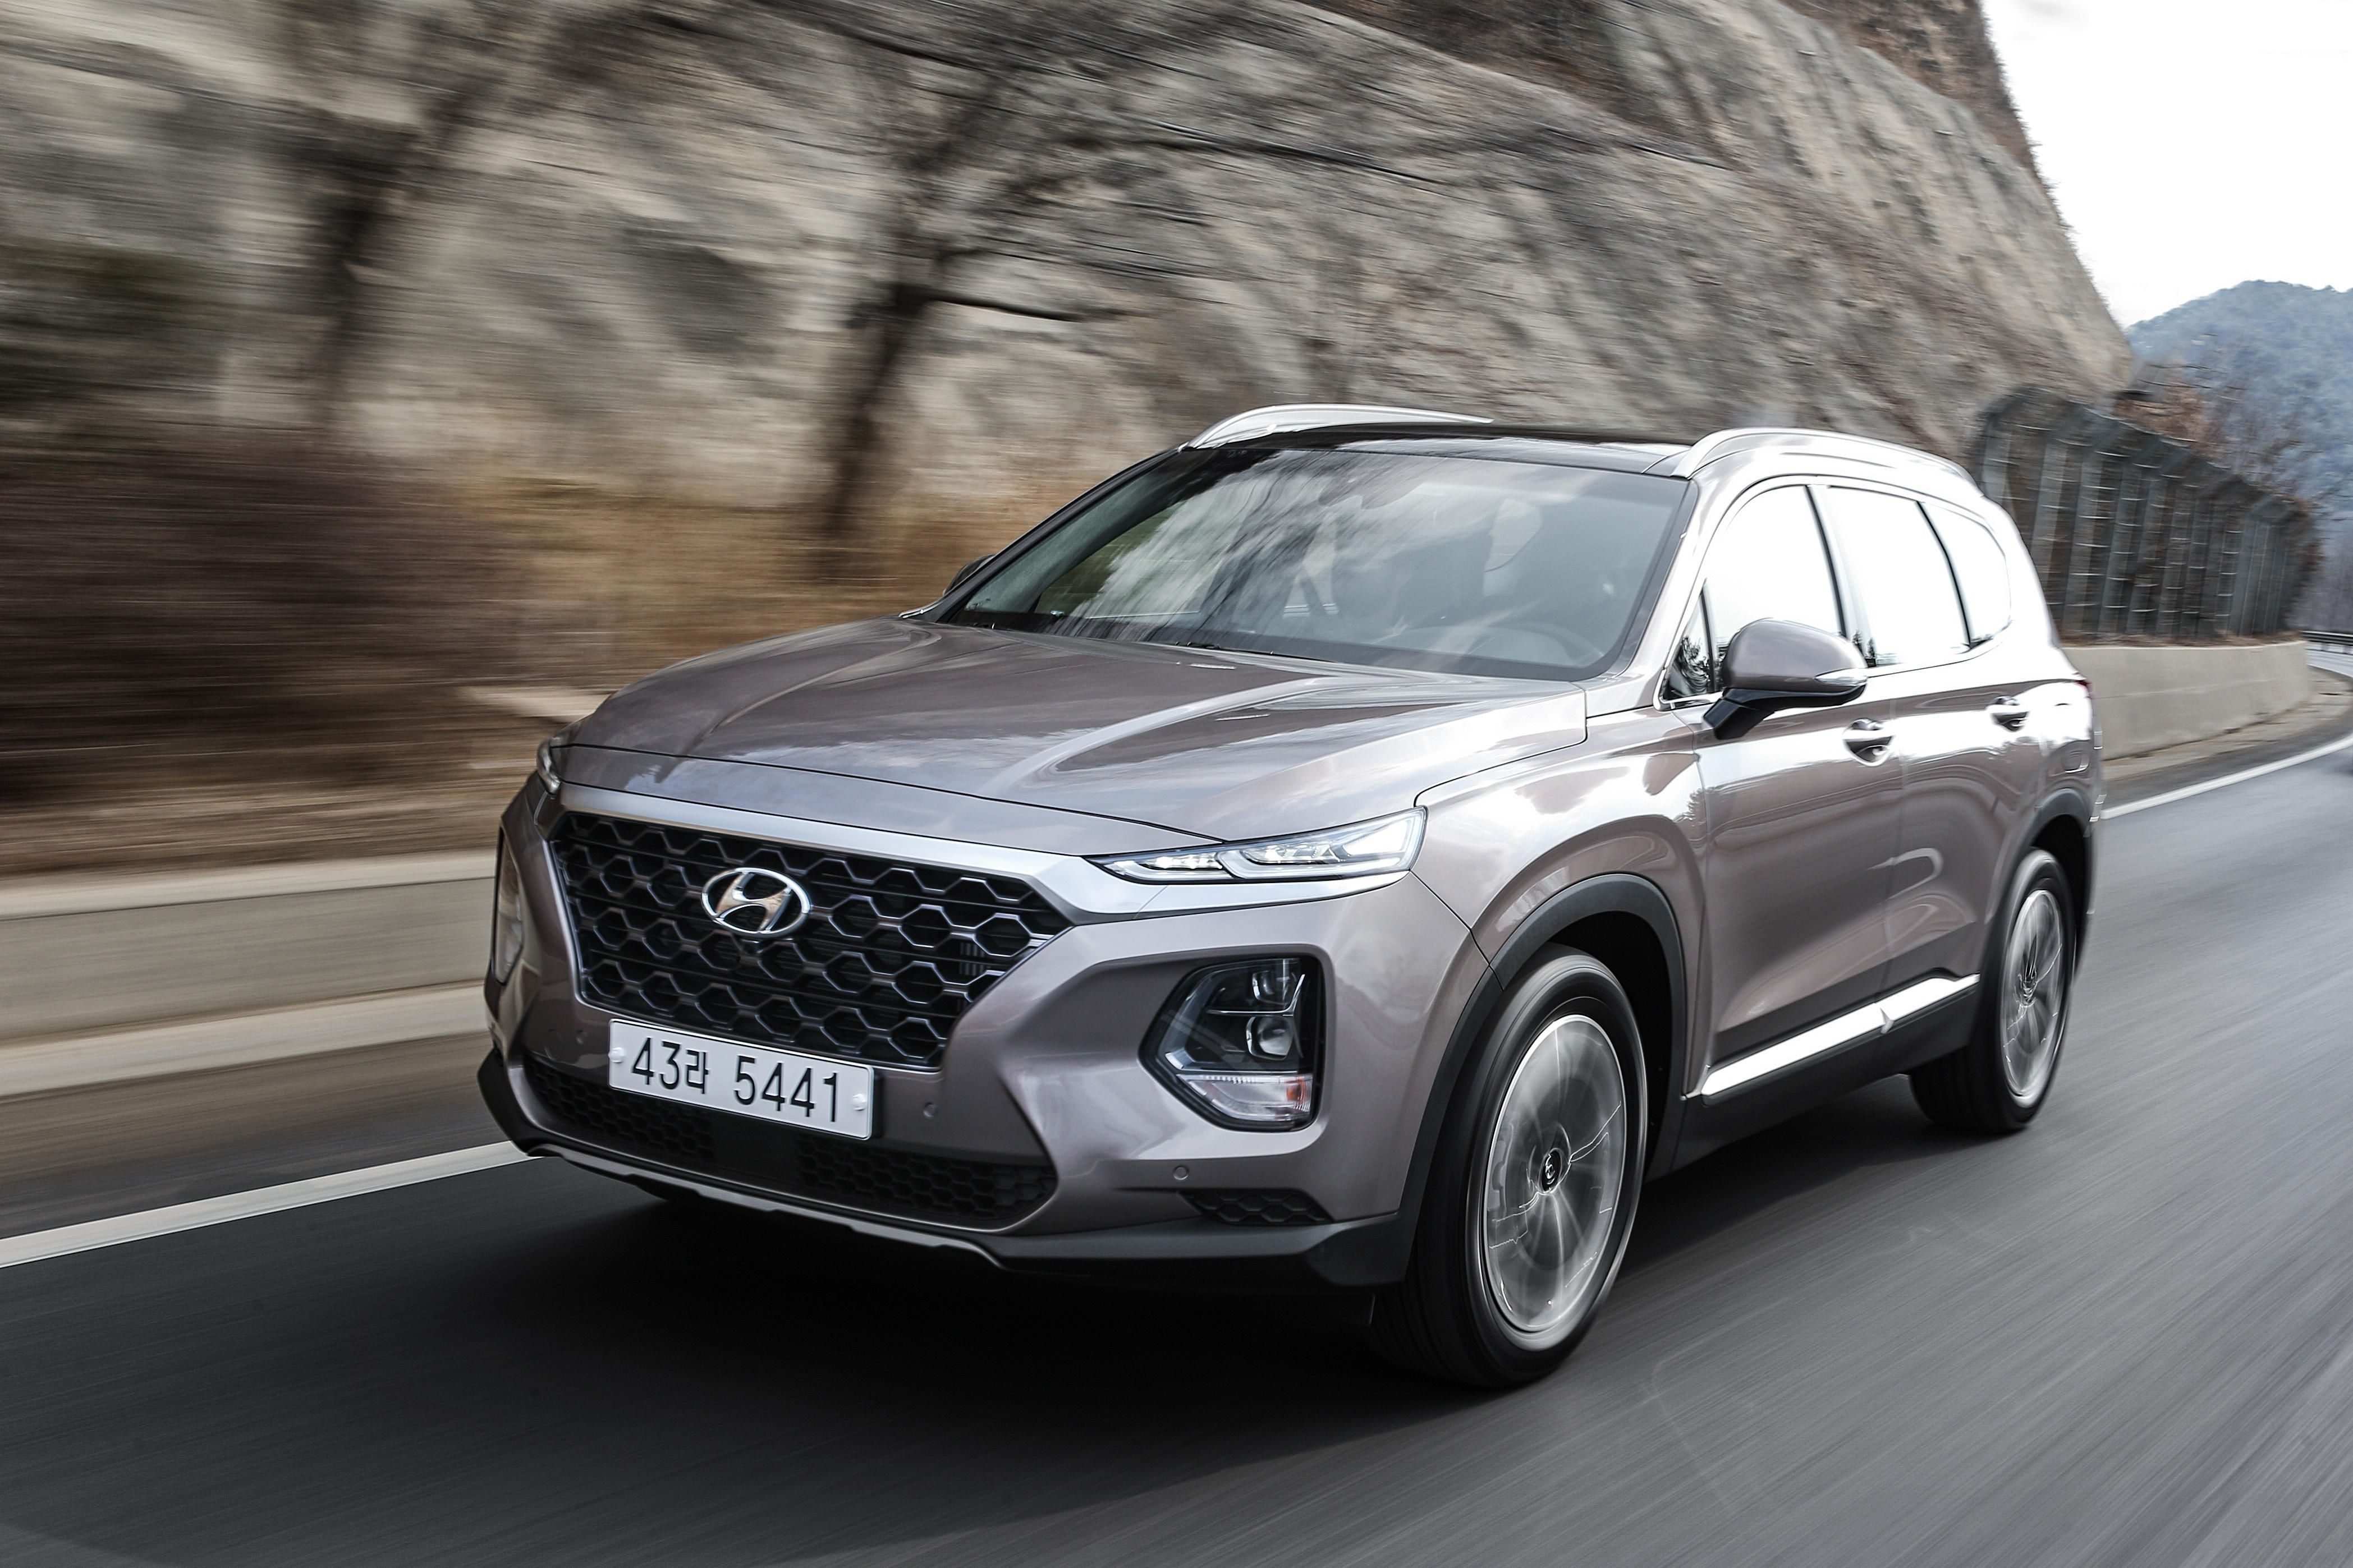 2019 Hyundai Santa Fe Coupe Overview And Price